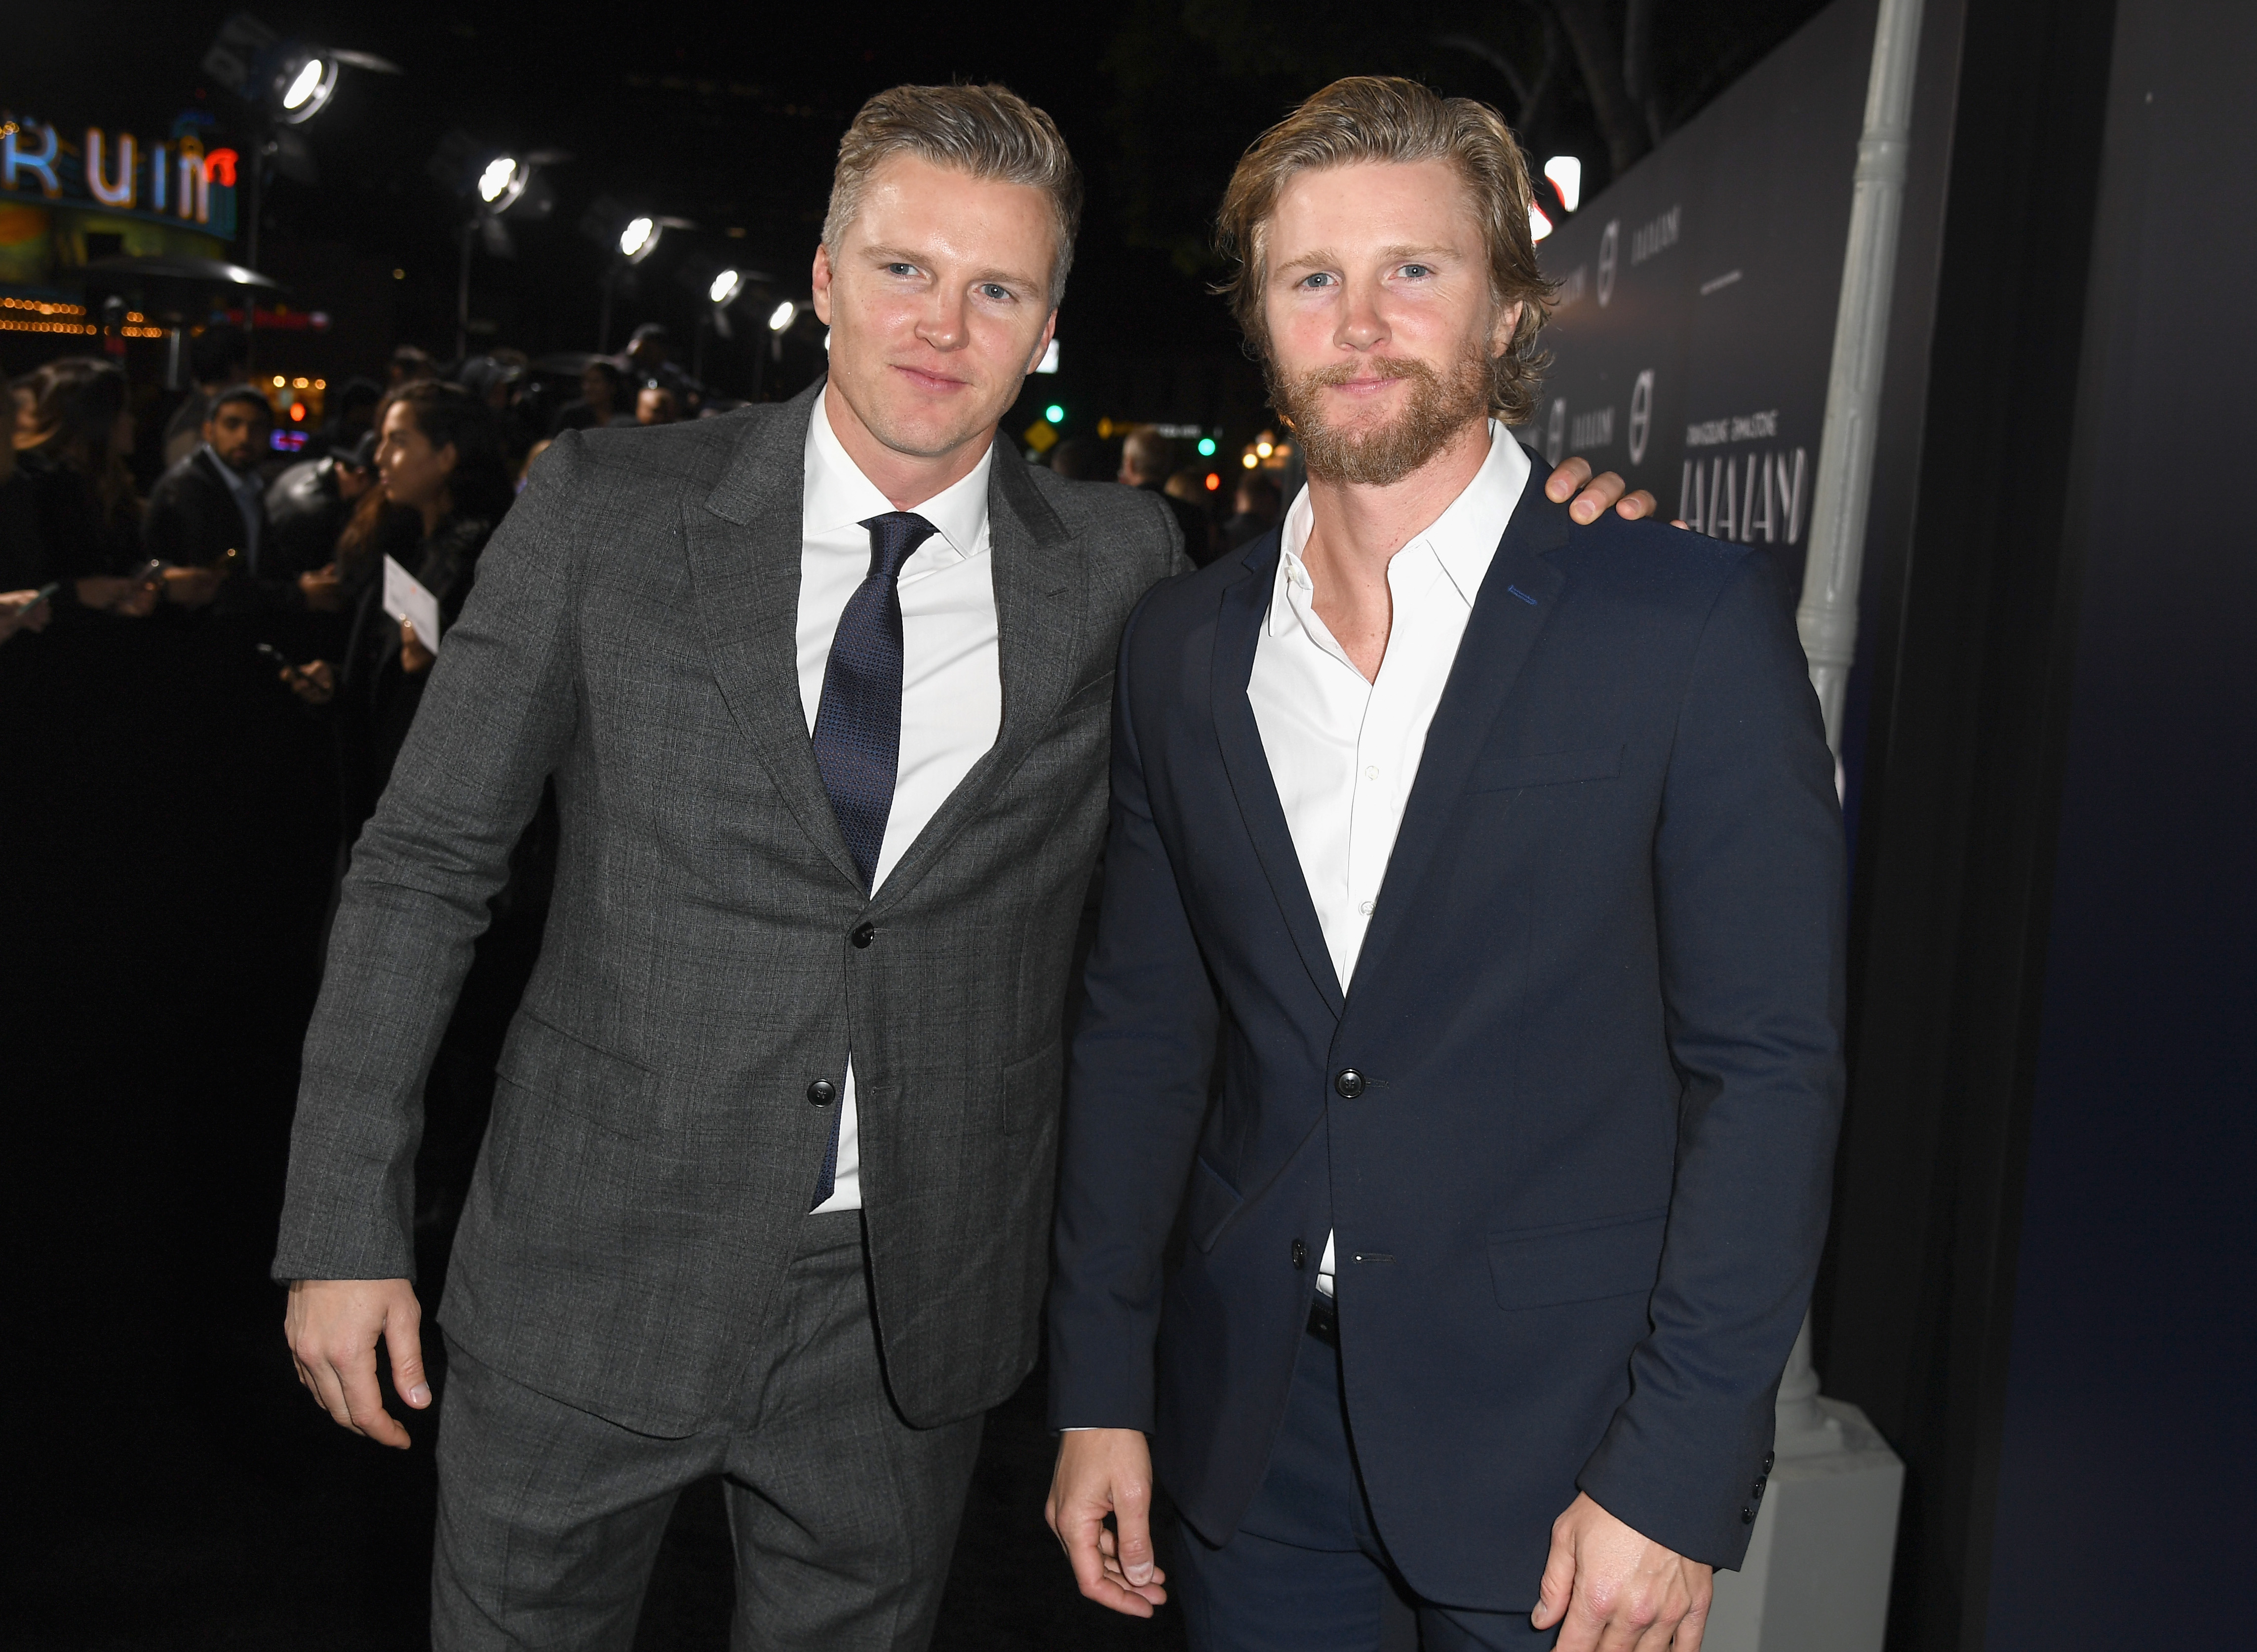 Producers Trent Luckinbill and Thad Luckinbill attend the premiere of Lionsgate's 'La La Land' at Mann Village Theatre on December 6, 2016 in Westwood, California. (Photo by Kevin Winter/Getty Images)